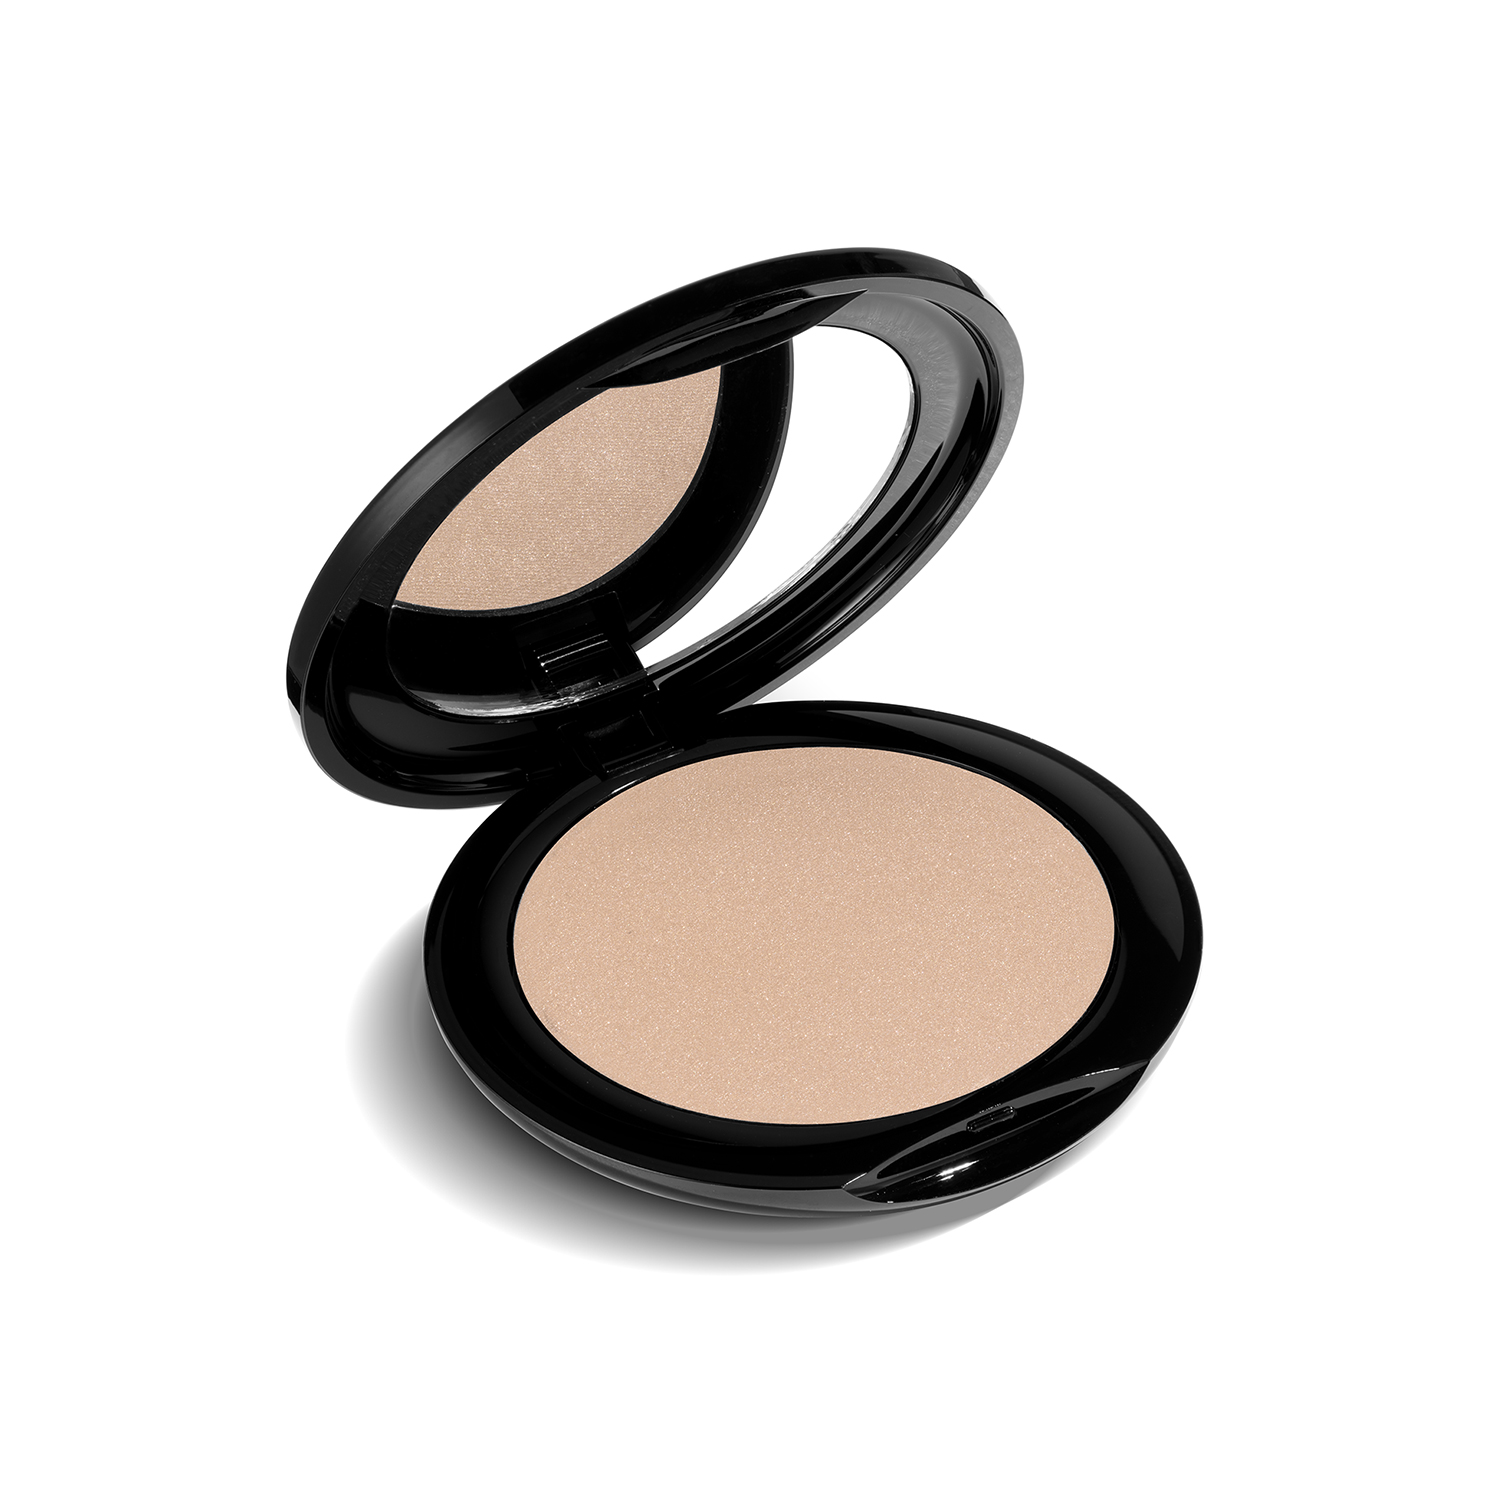 PERFECT FINISH COMPACT FACE POWDER (01 Porcelain)